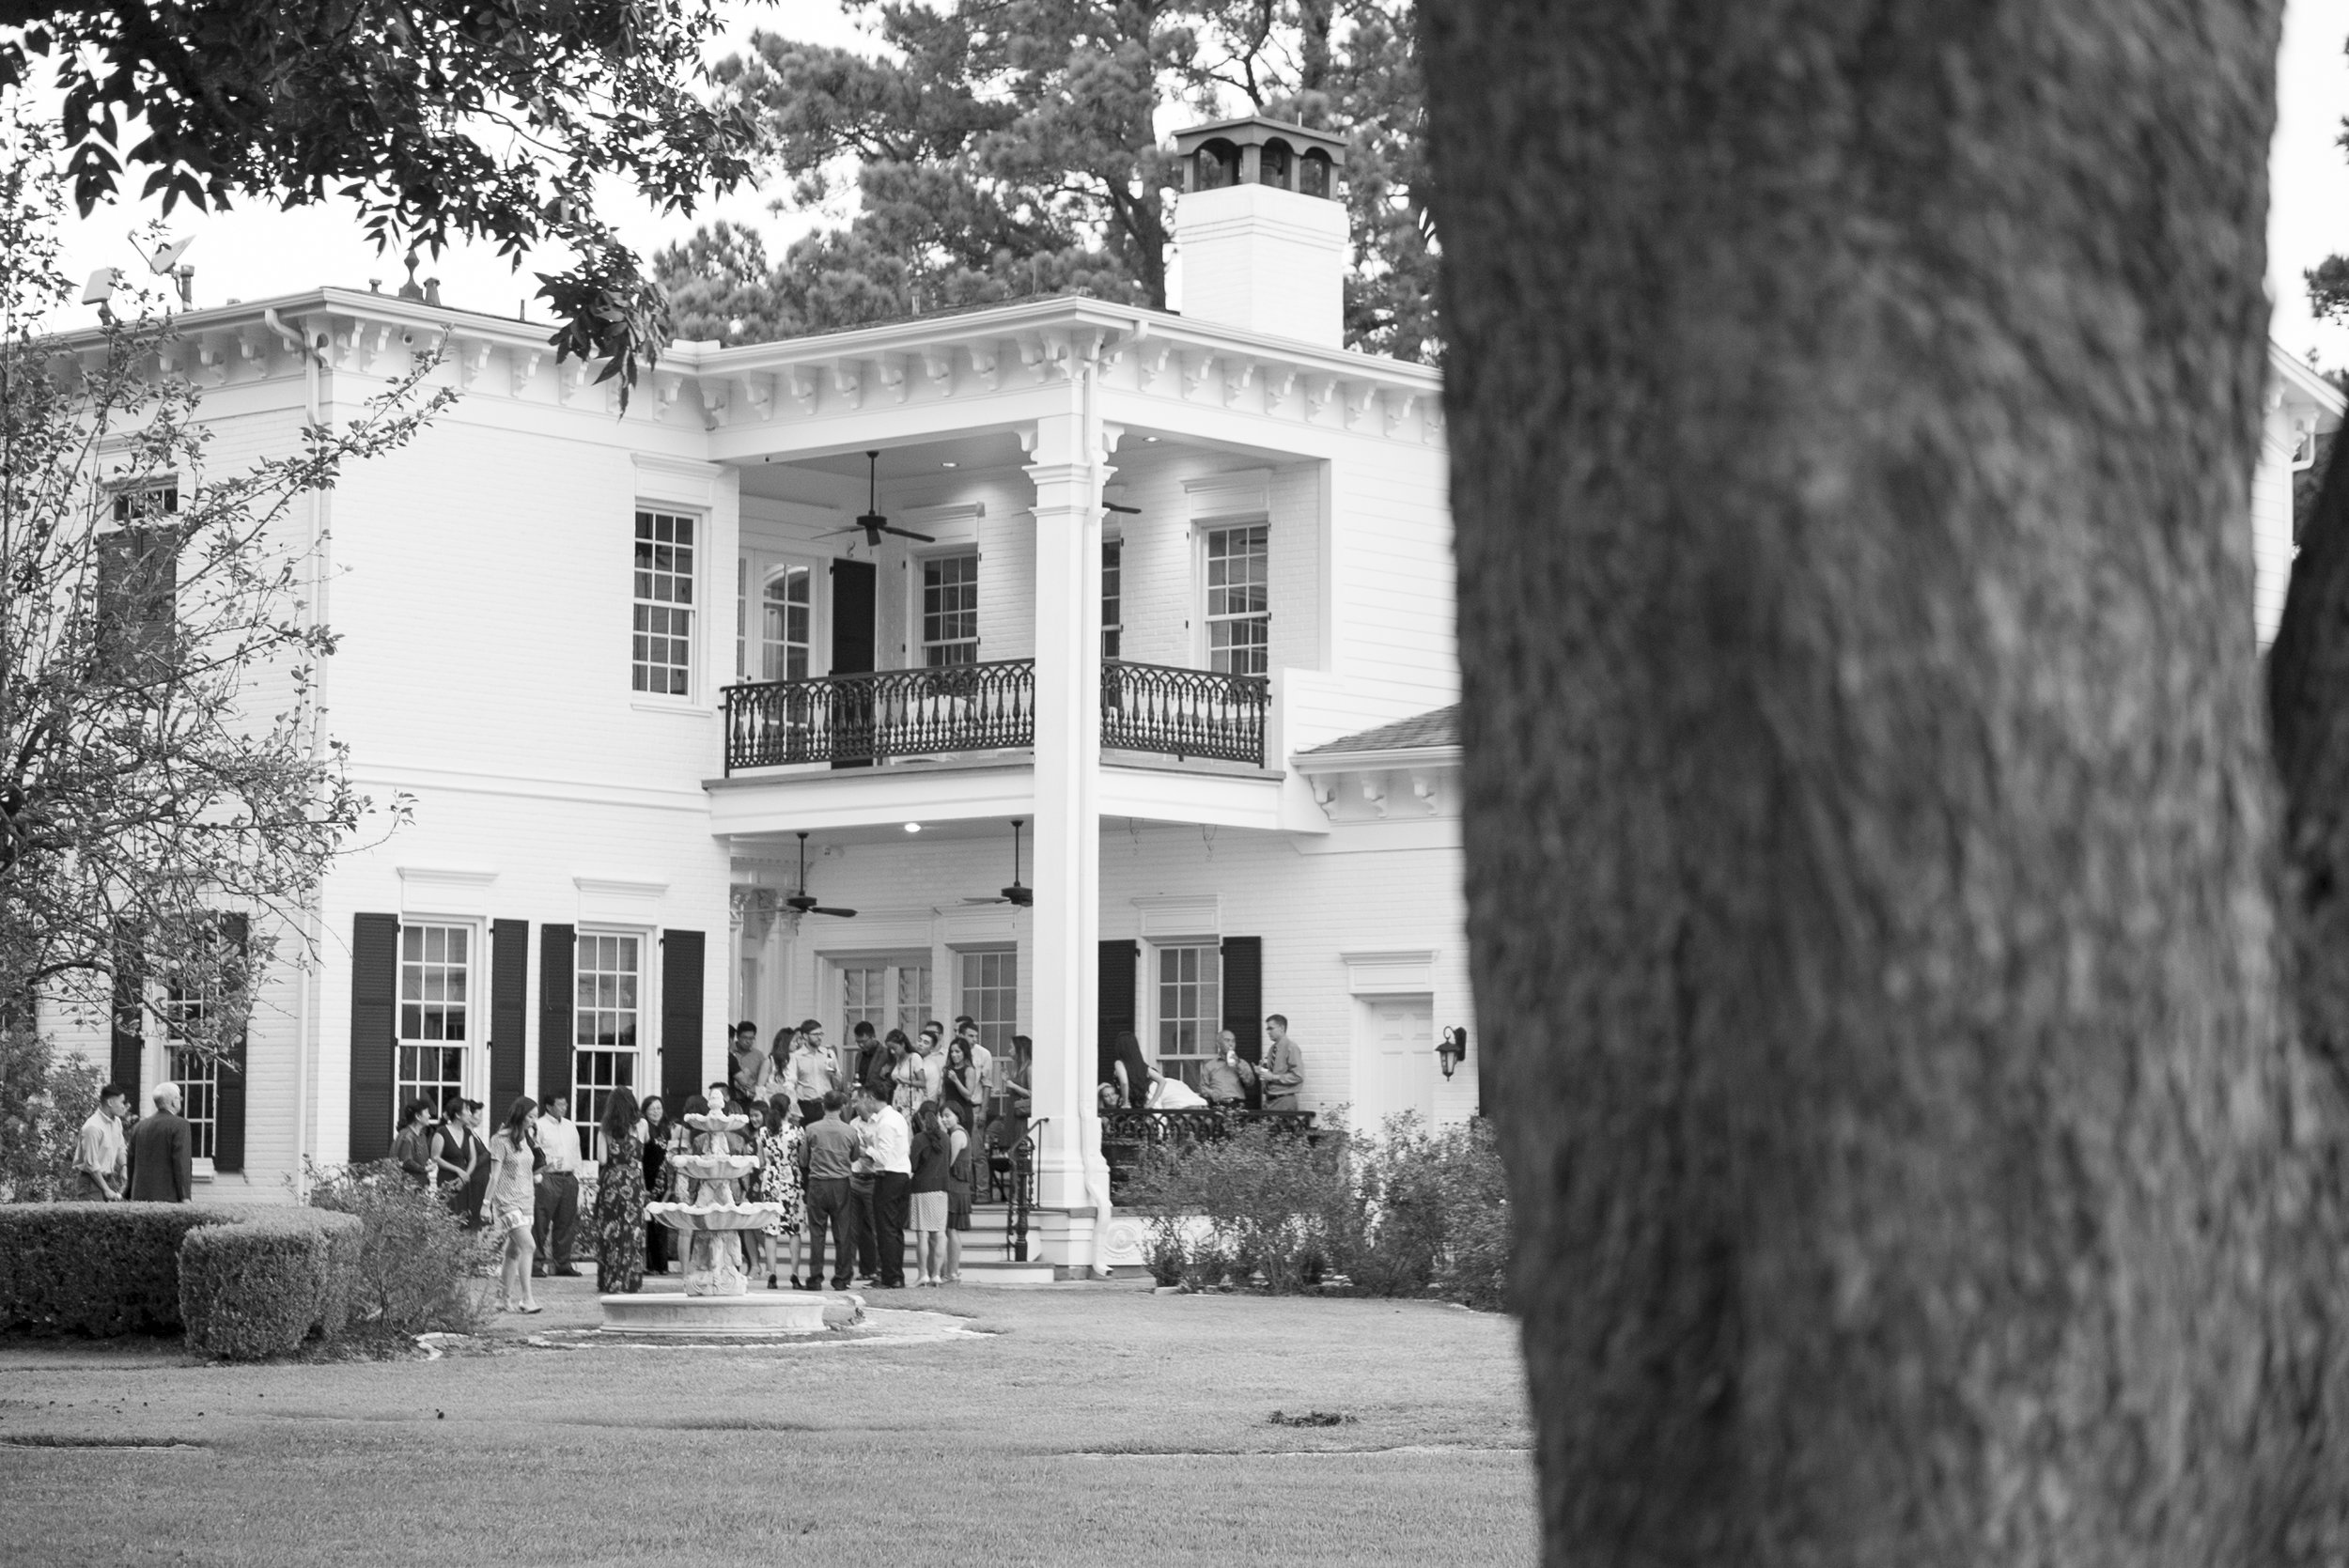 Ceremony rehearsal on the back lawn of Sandlewood Manor.